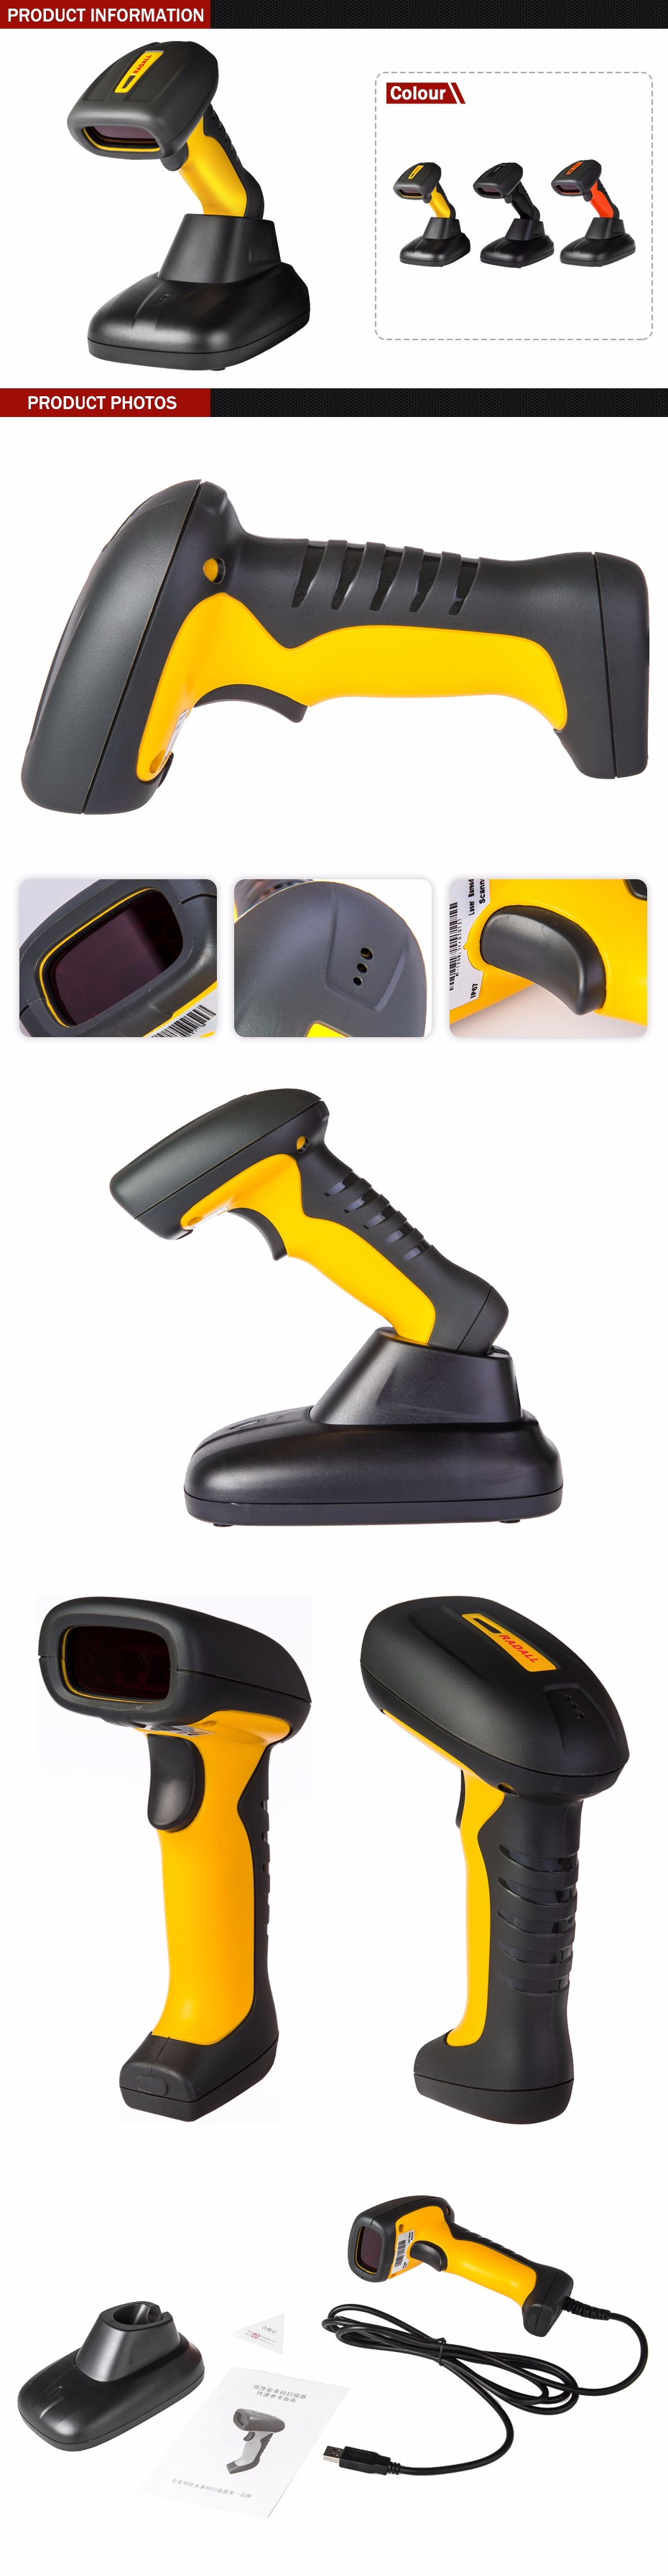 High Quality 2d barcode scanner